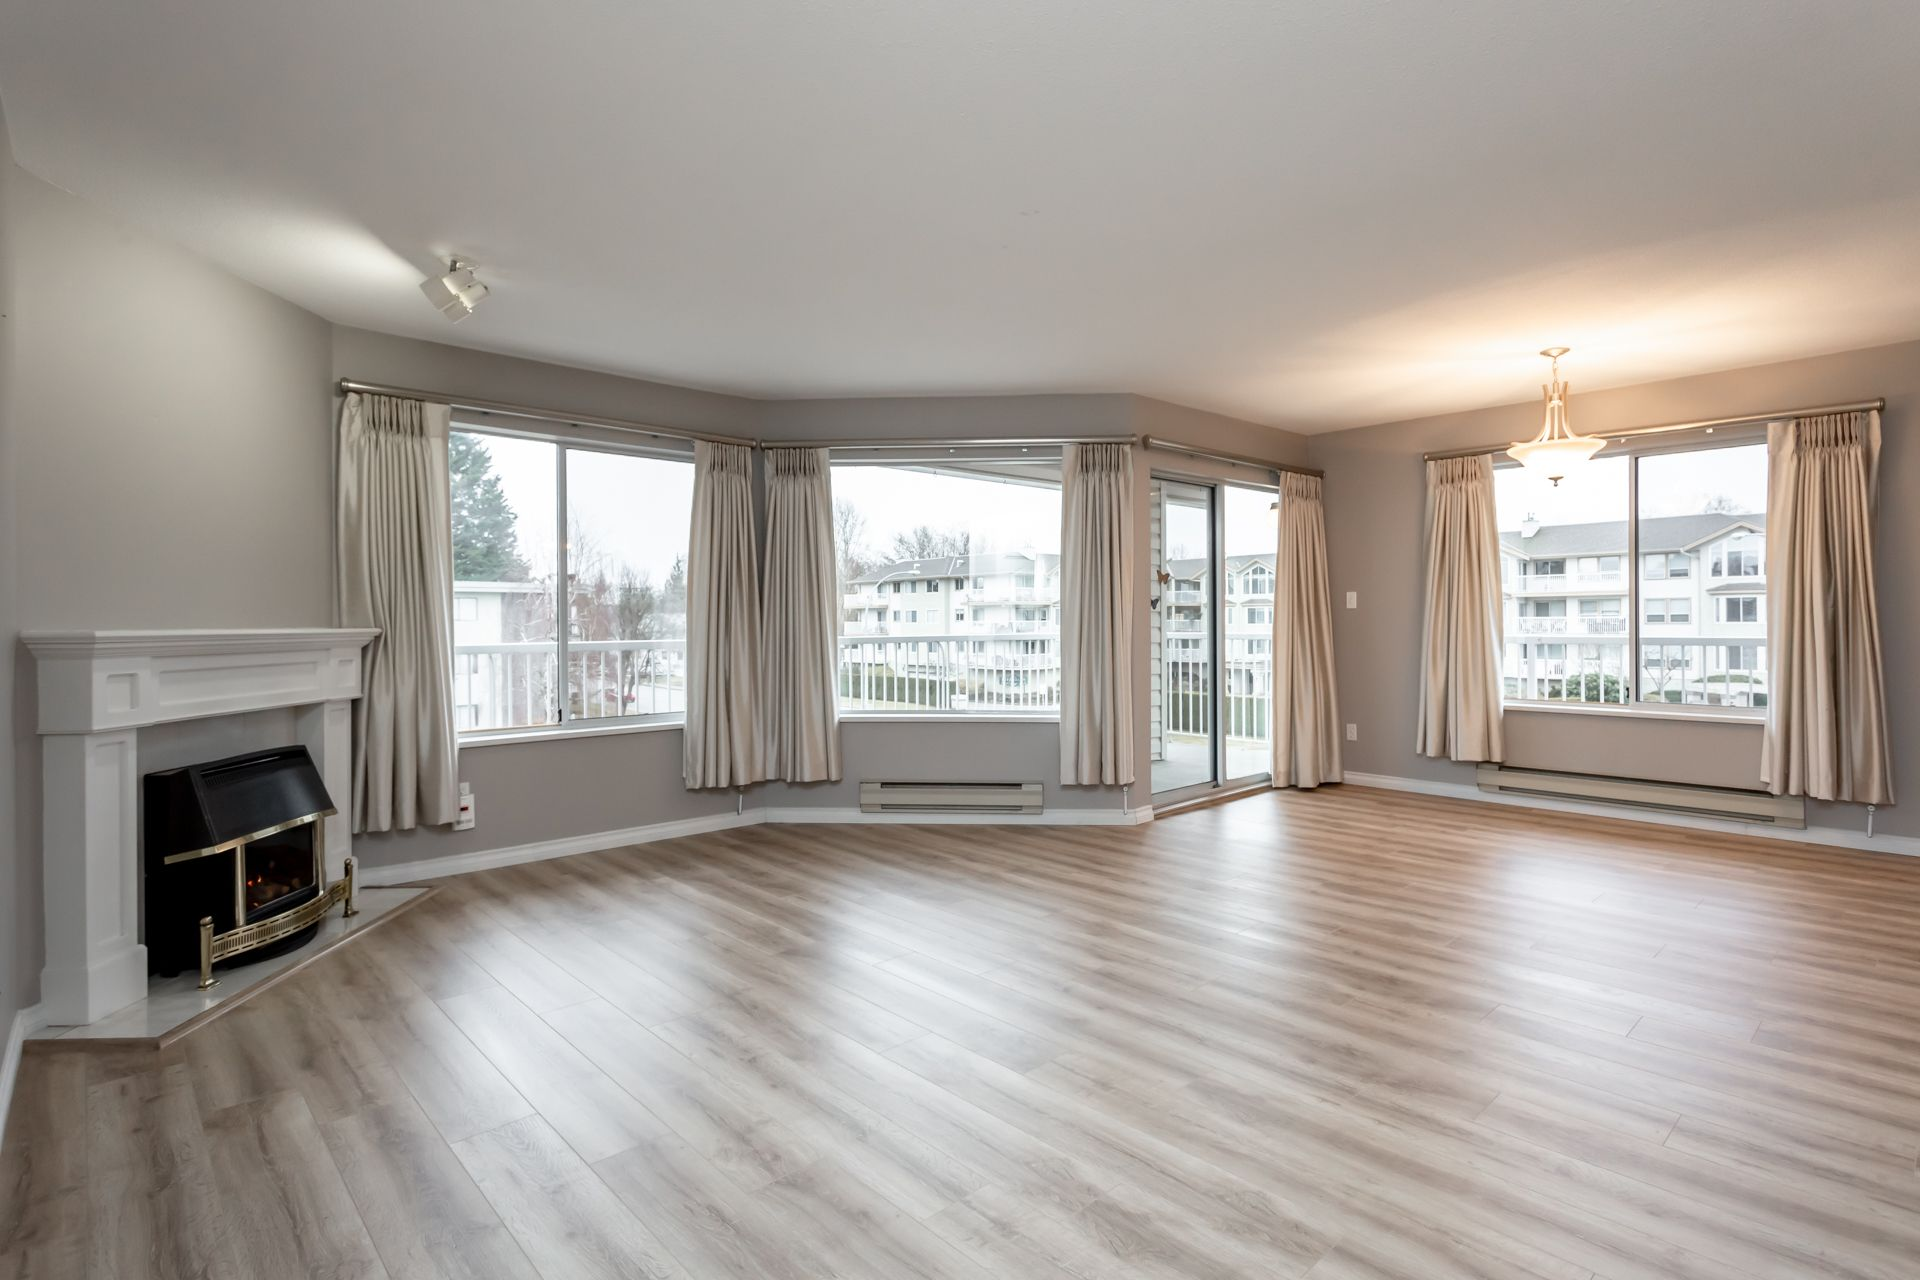 Beautiful and spacious living room with large windows allows light to flood in!